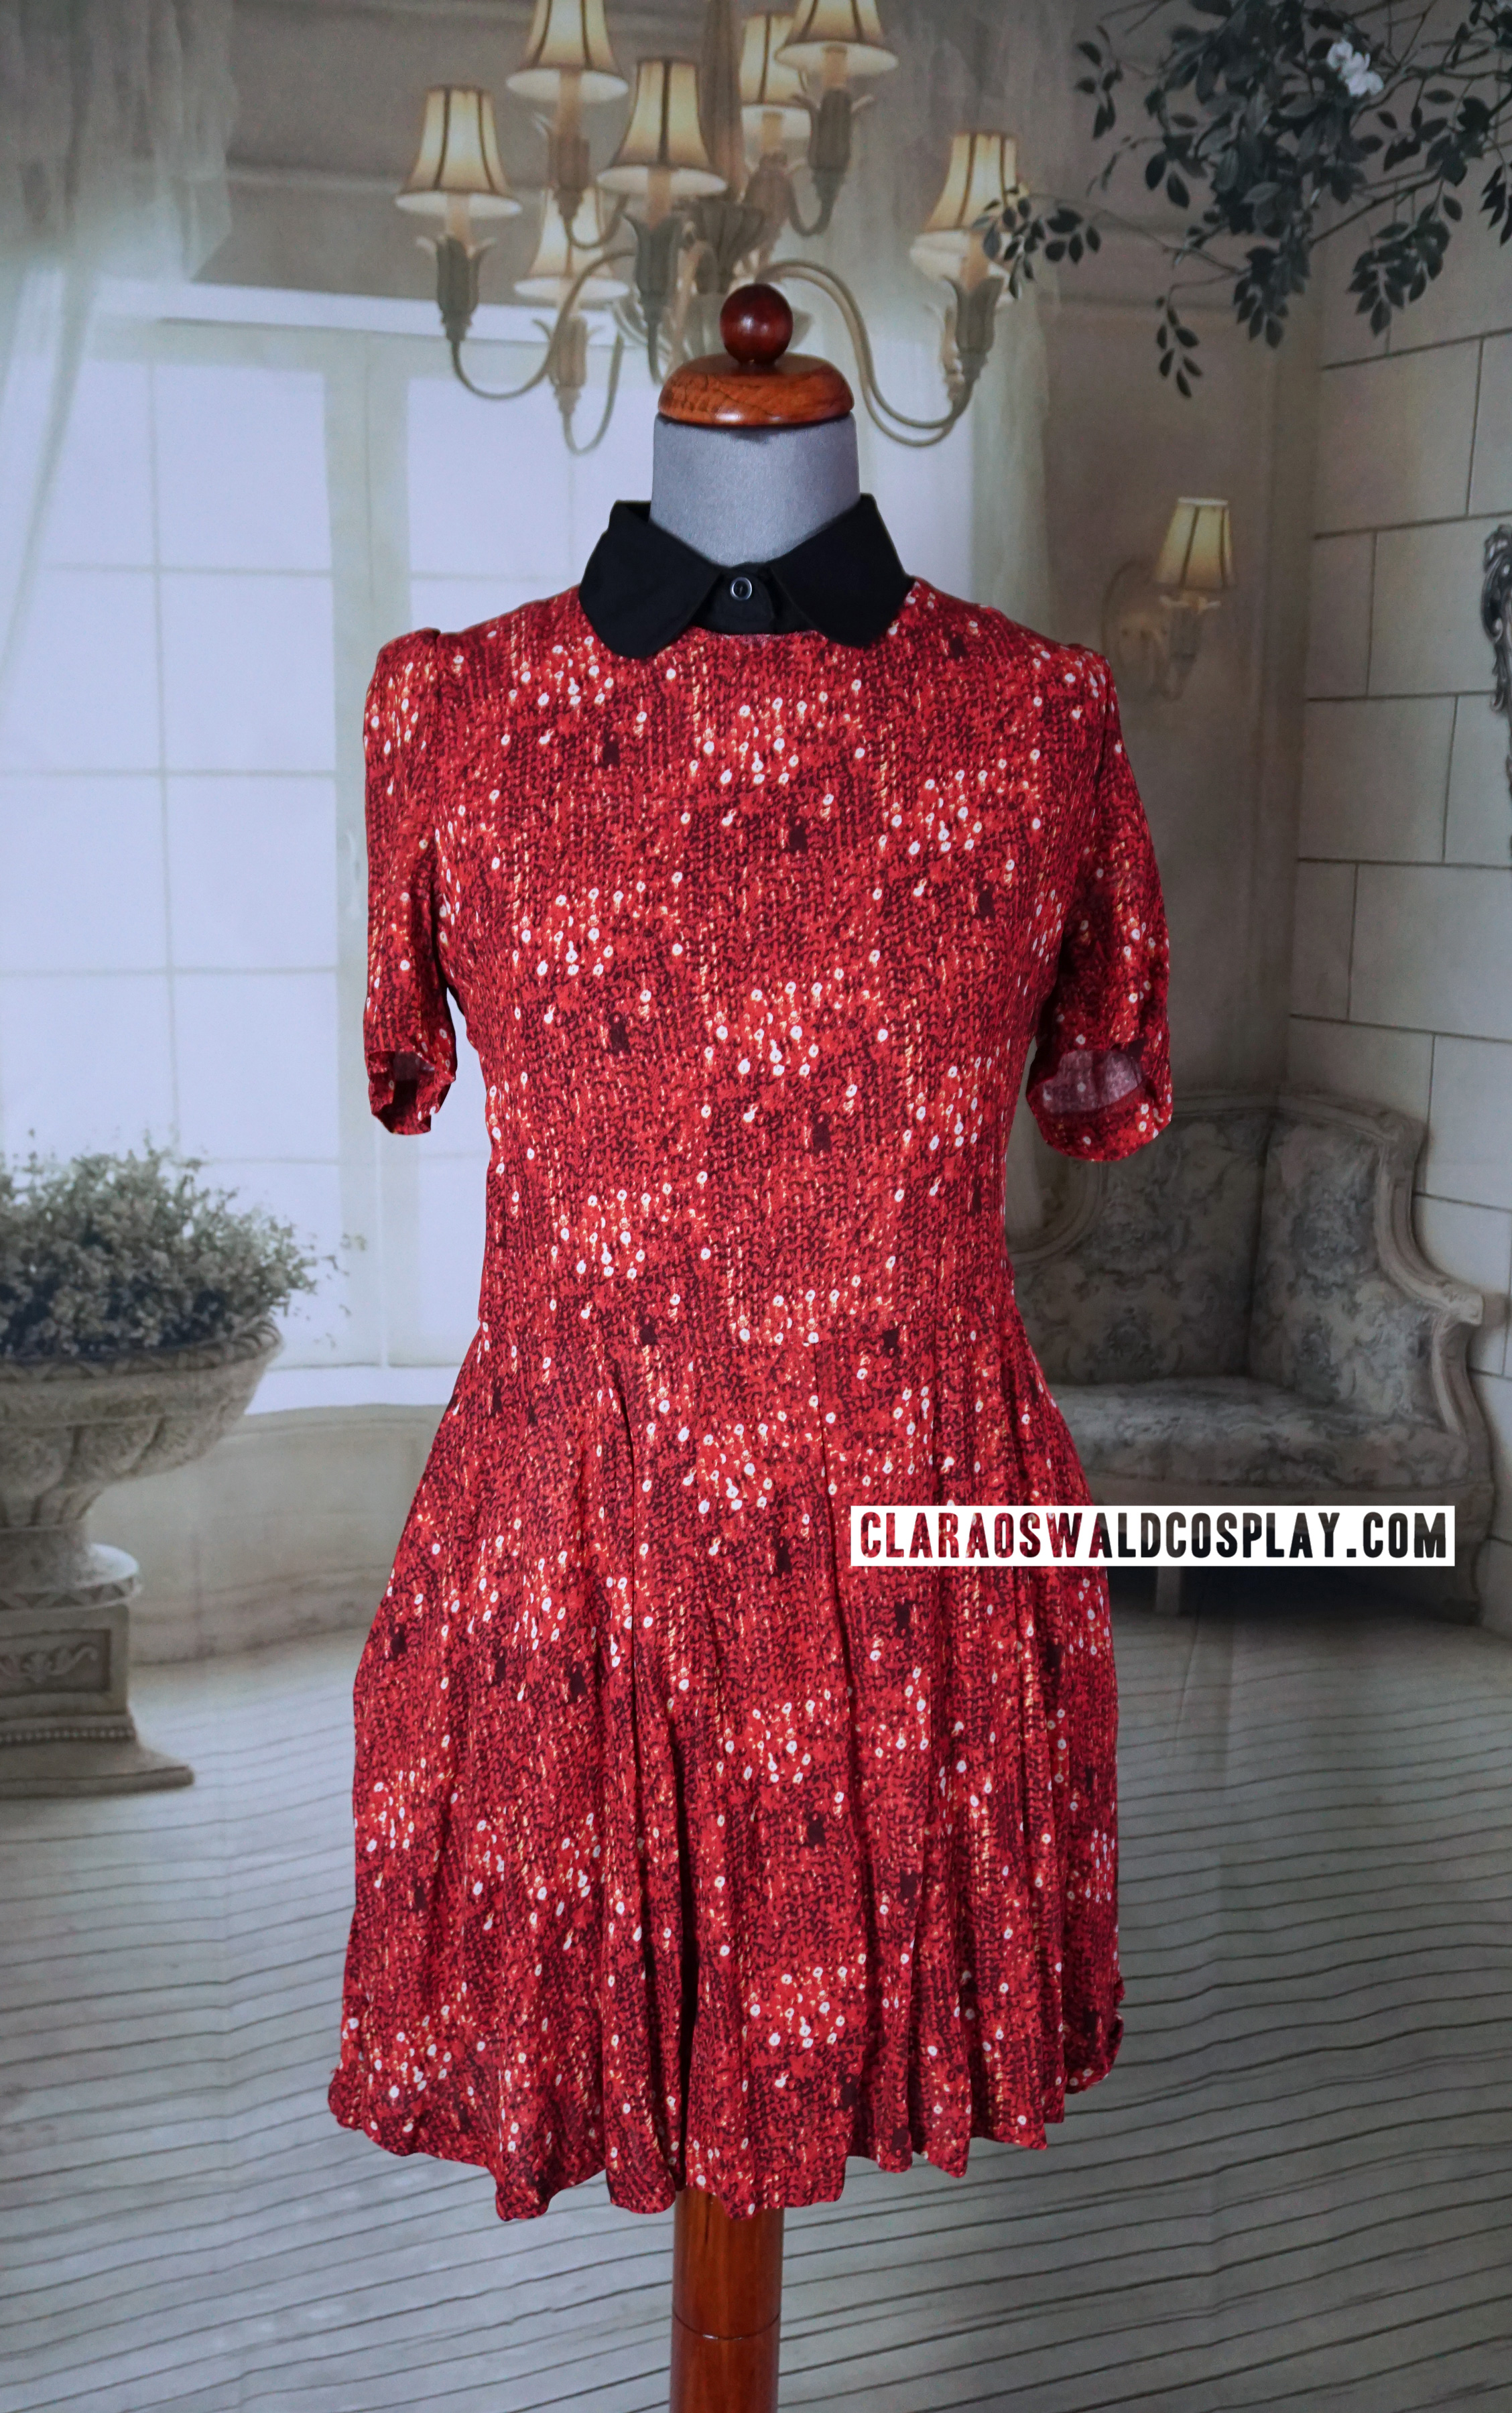 A closer look at the Urban Outfitters Vaudeville & Burlesque Fit & Flare Dress from JTTCOTT